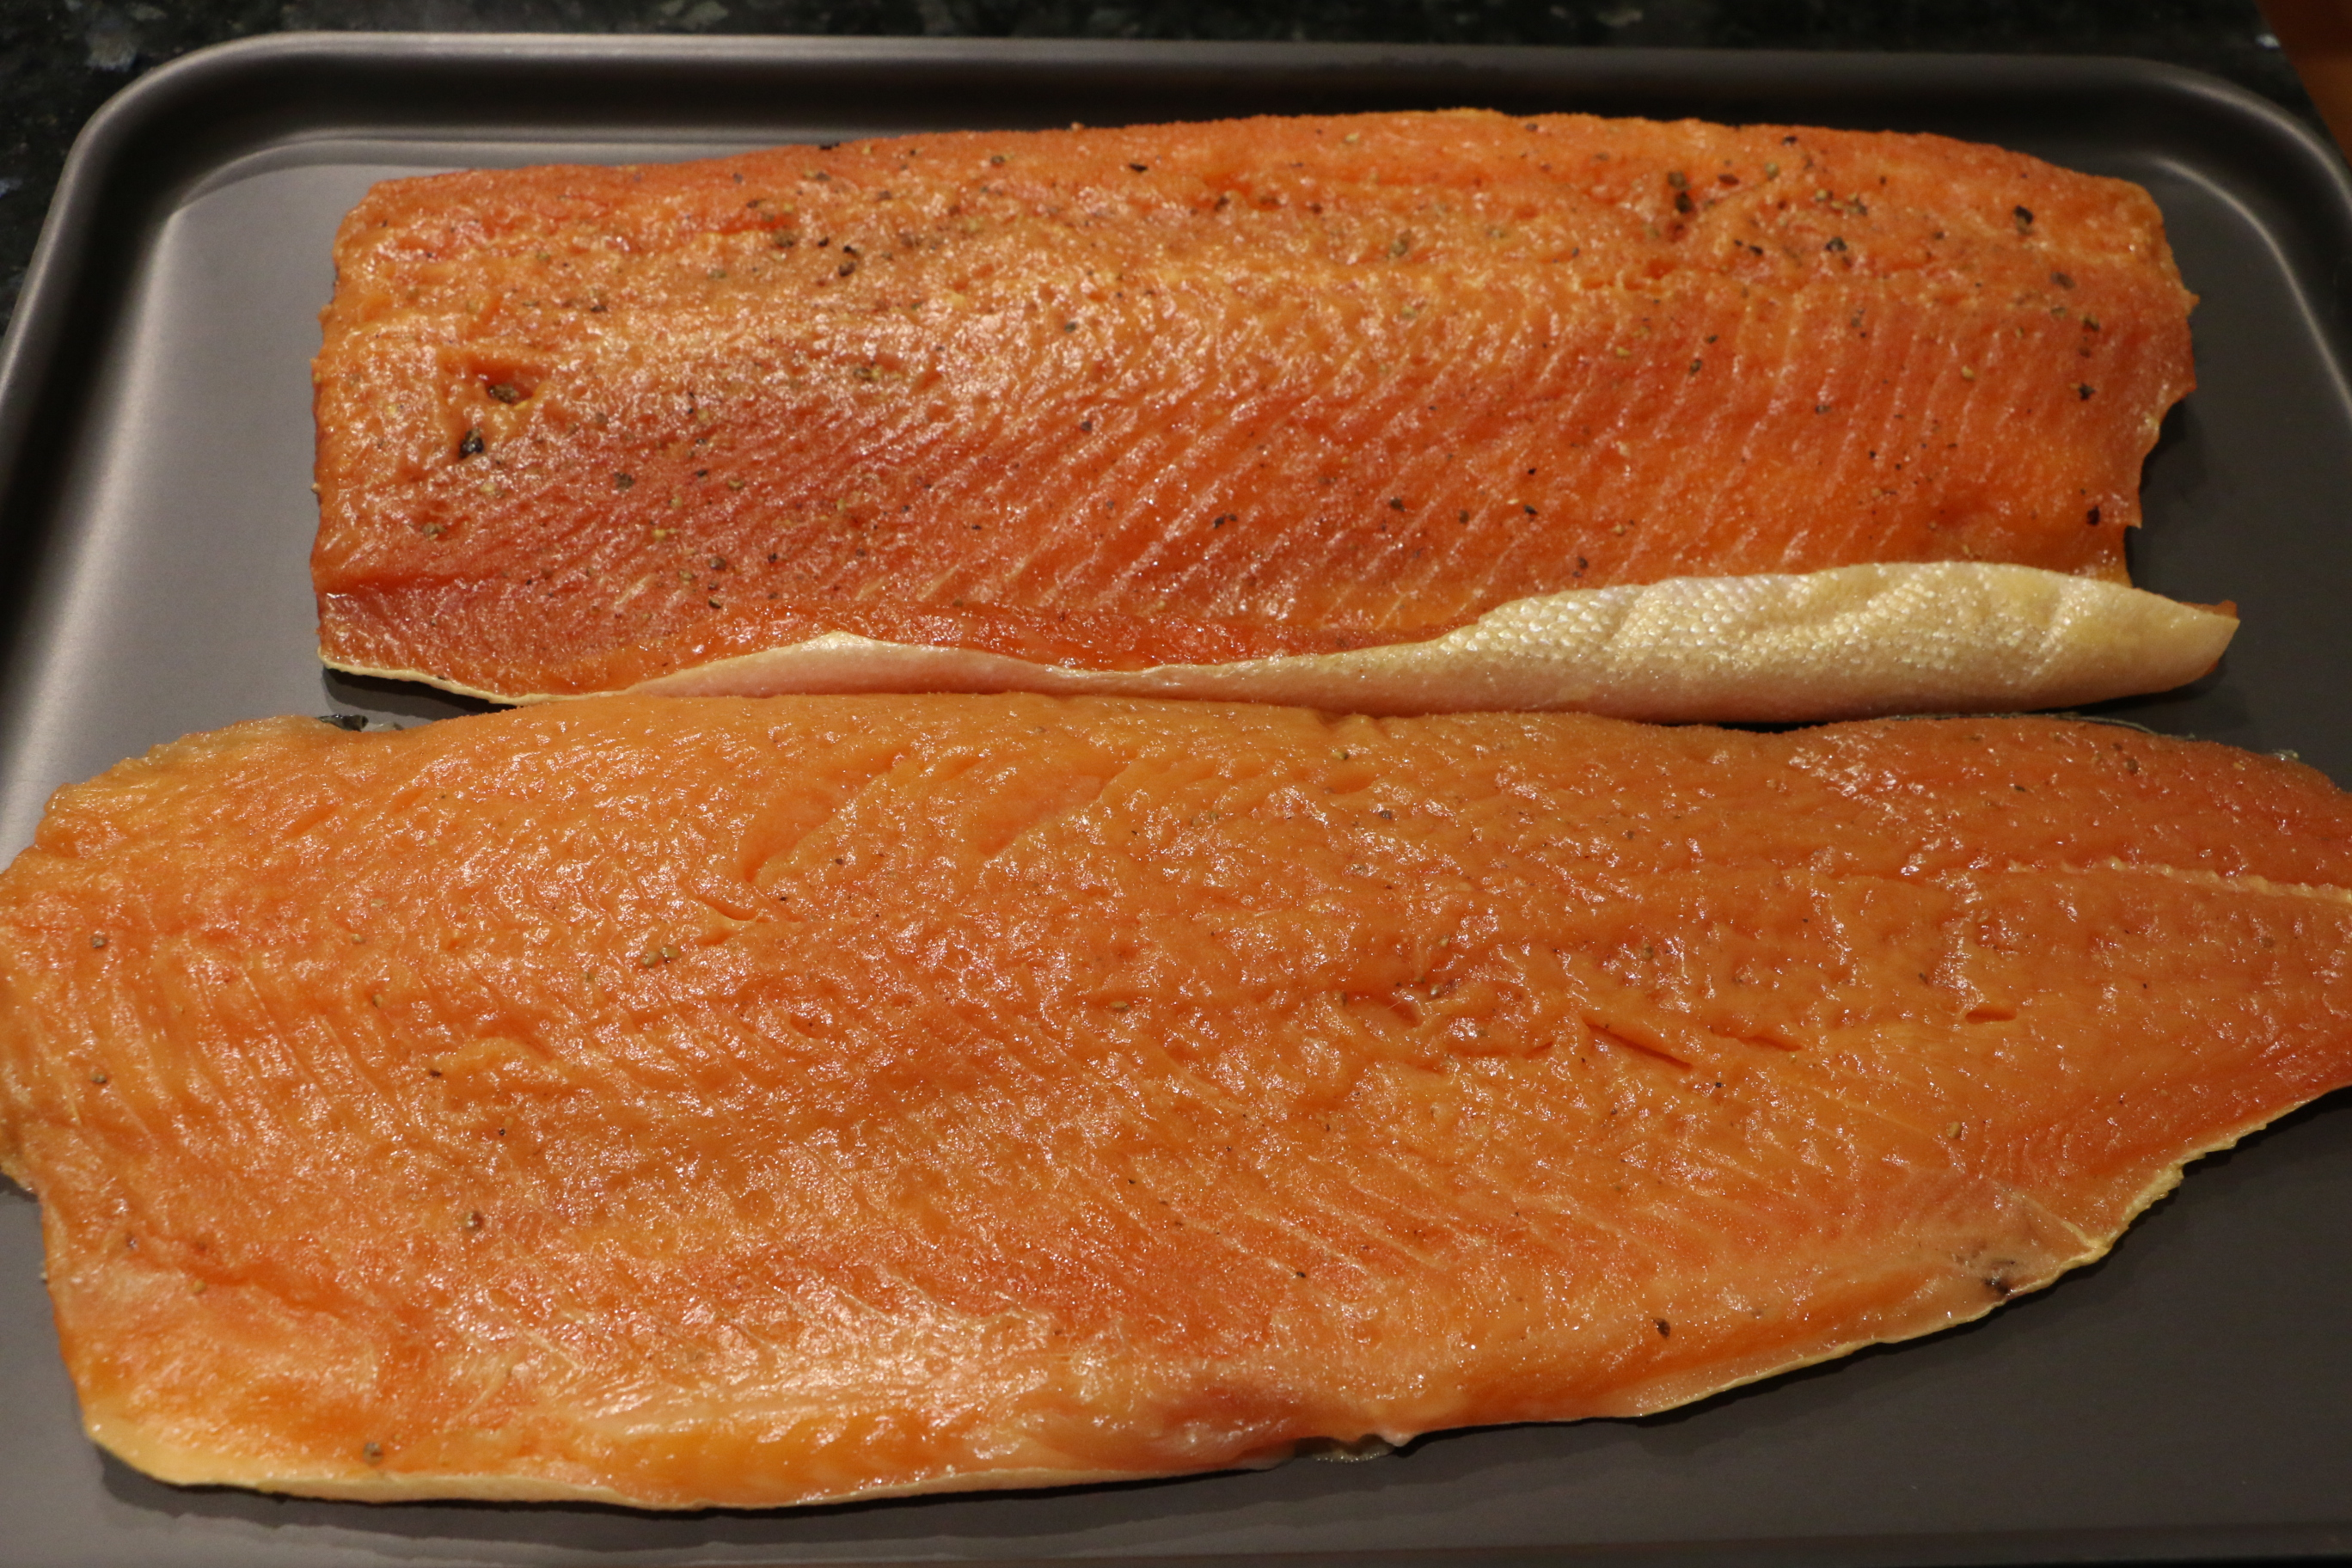 Cold smoked trout with juniper (top), and cold smoked salmon